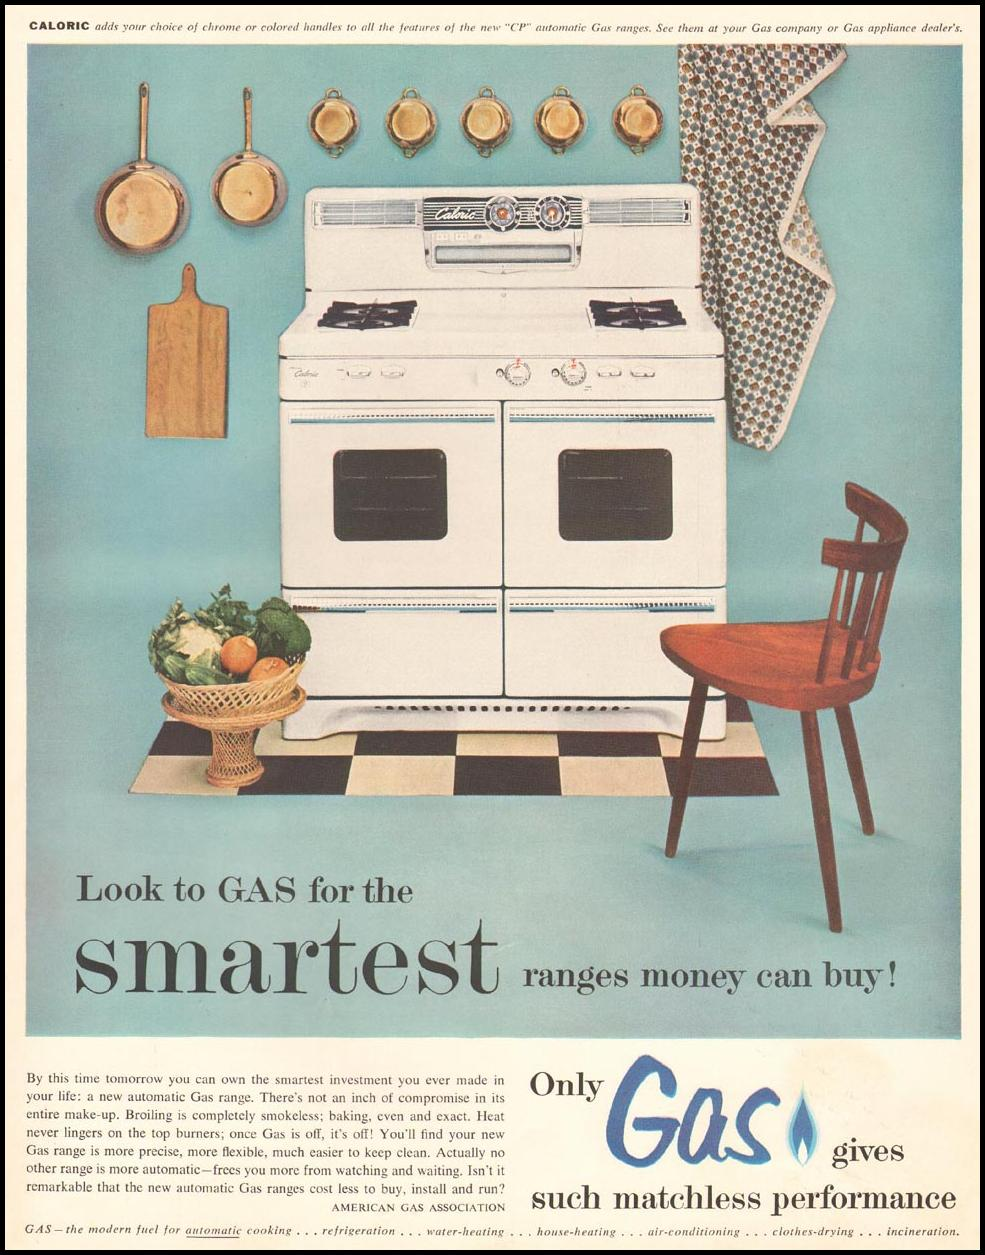 GAS RANGES LADIES' HOME JOURNAL 03/01/1954 INSIDE BACK